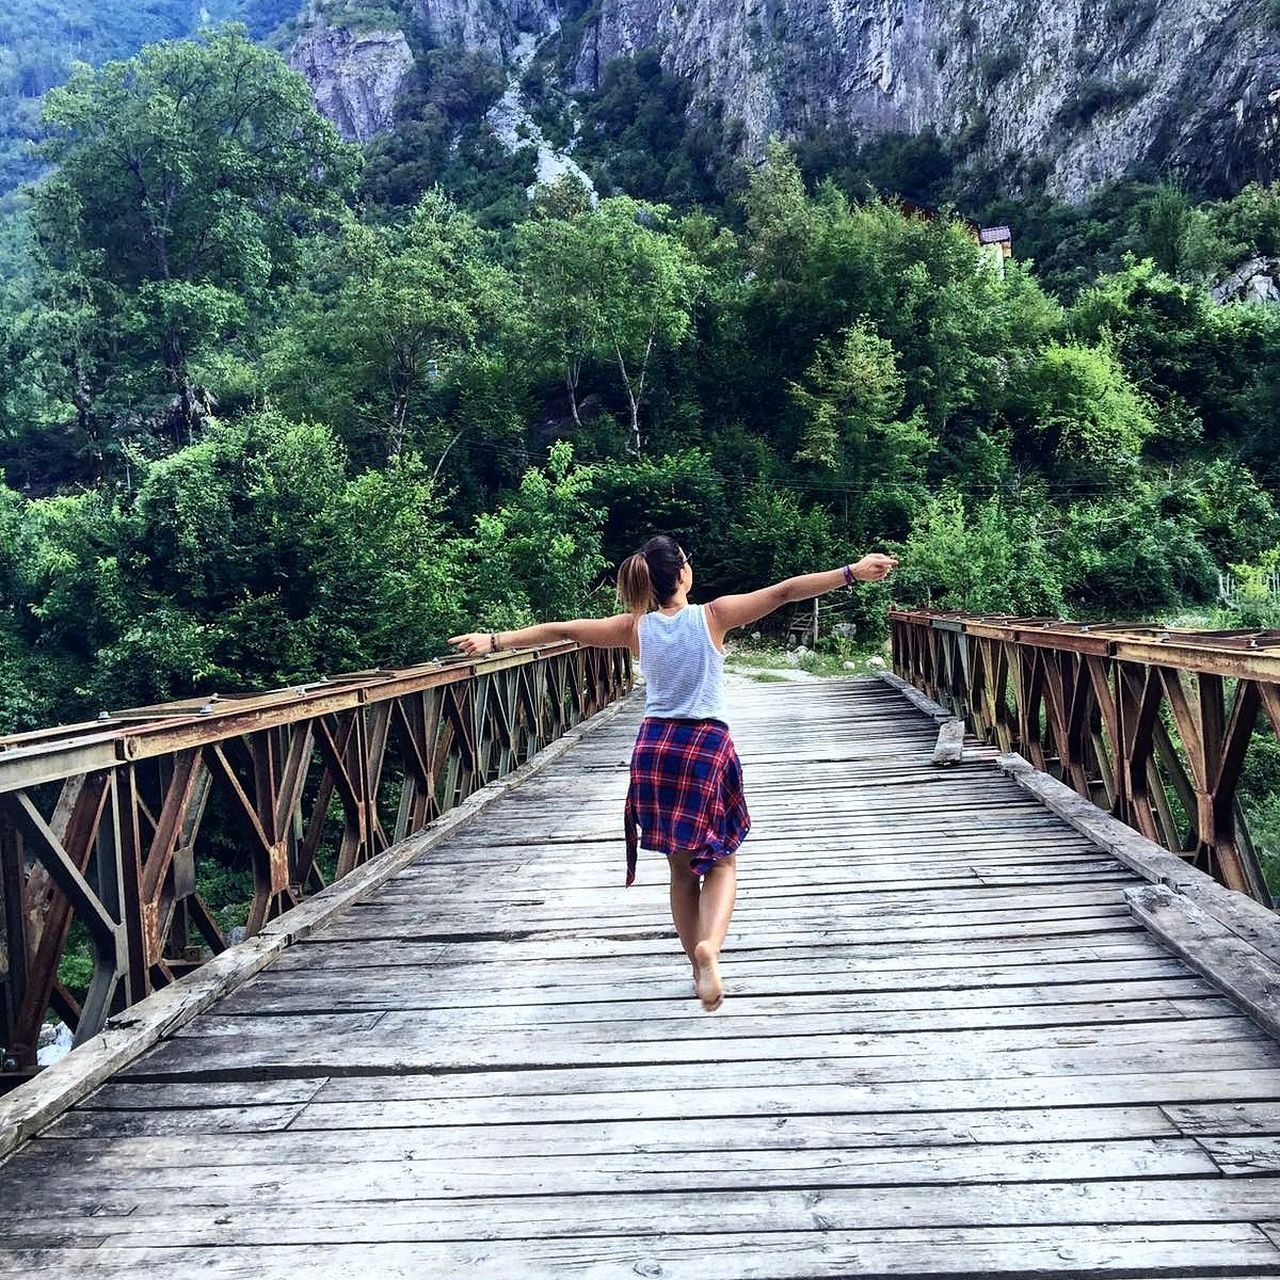 Albania Check This Out Girl Bridge Travel Photography Tagsforlikes EyeEm Best Shots EyeEm Gallery Travelling Eyemphotography Enjoying Life Nature Photography Nature EyeEm Best Shots - Nature Naturschönheiten Valbone